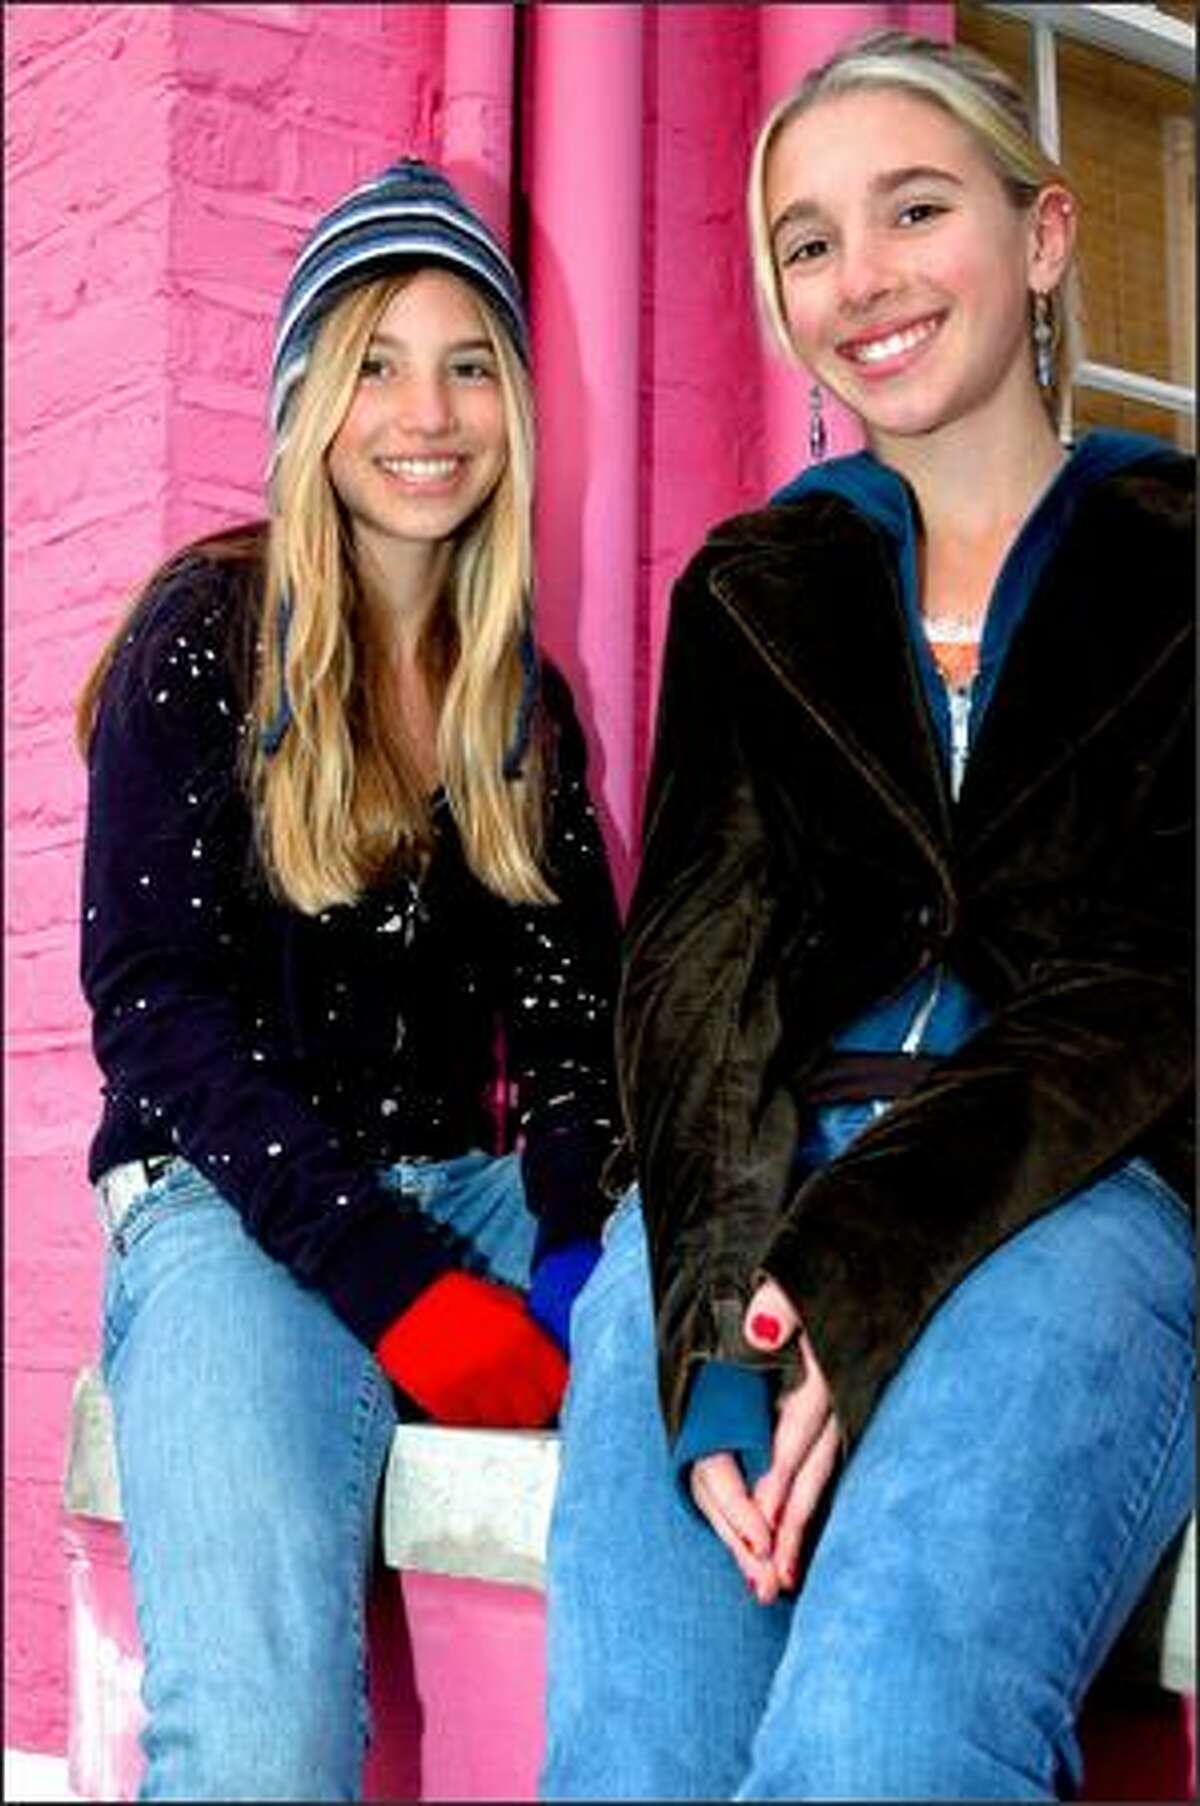 Smoosh -- Seattle sisters Chloe, left, and Asya -- will bring their anti-smoking message to Saquatch!, which has banned tobacco promotion since 2005.